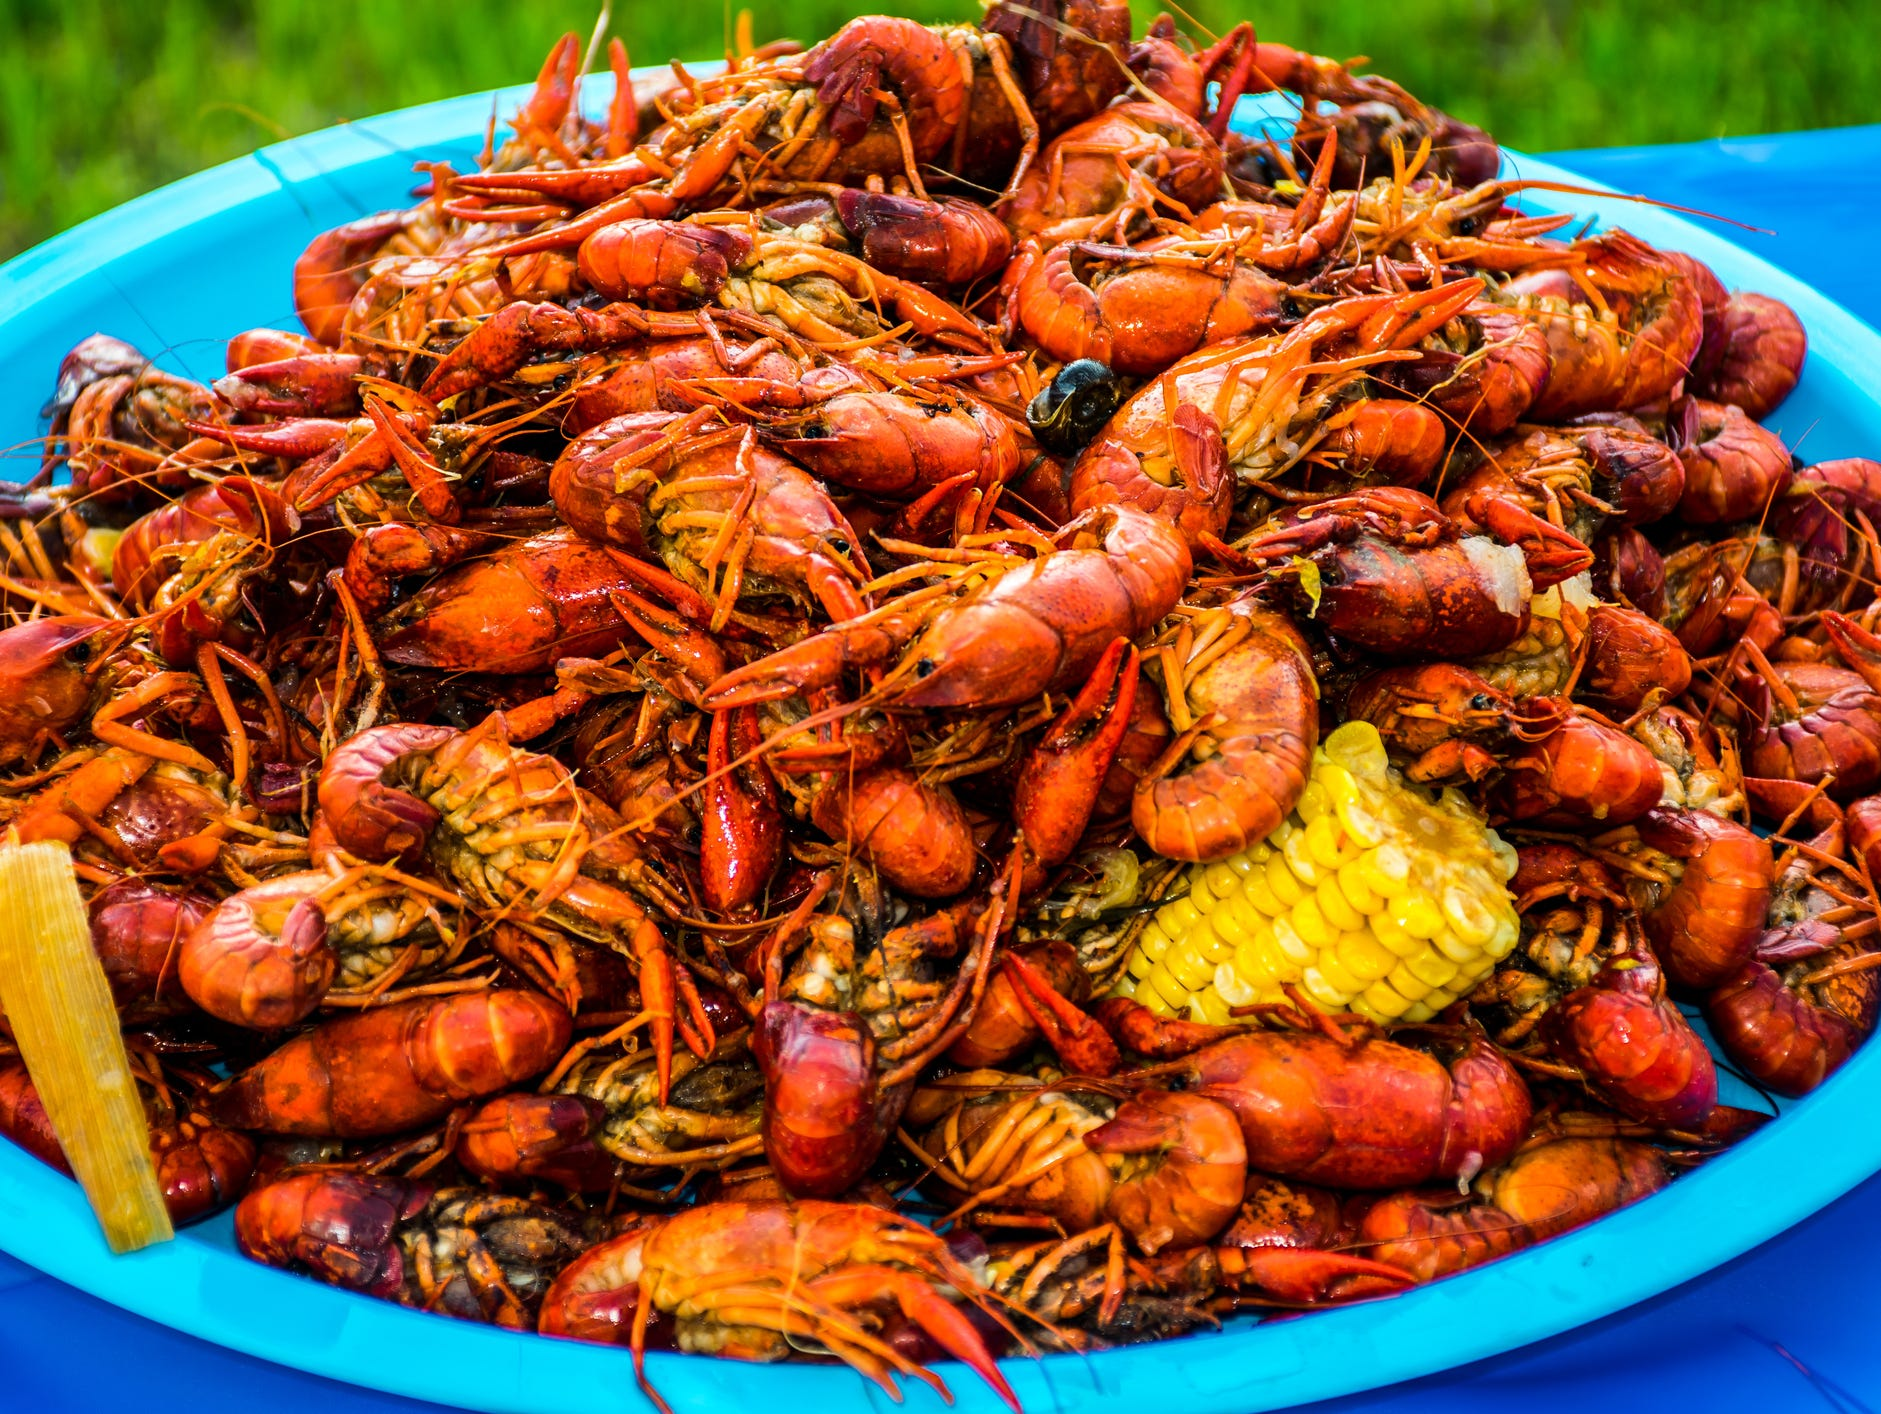 FIVE winners will receive a Crawfish pot, burner, and $300 VISA Gift Card!